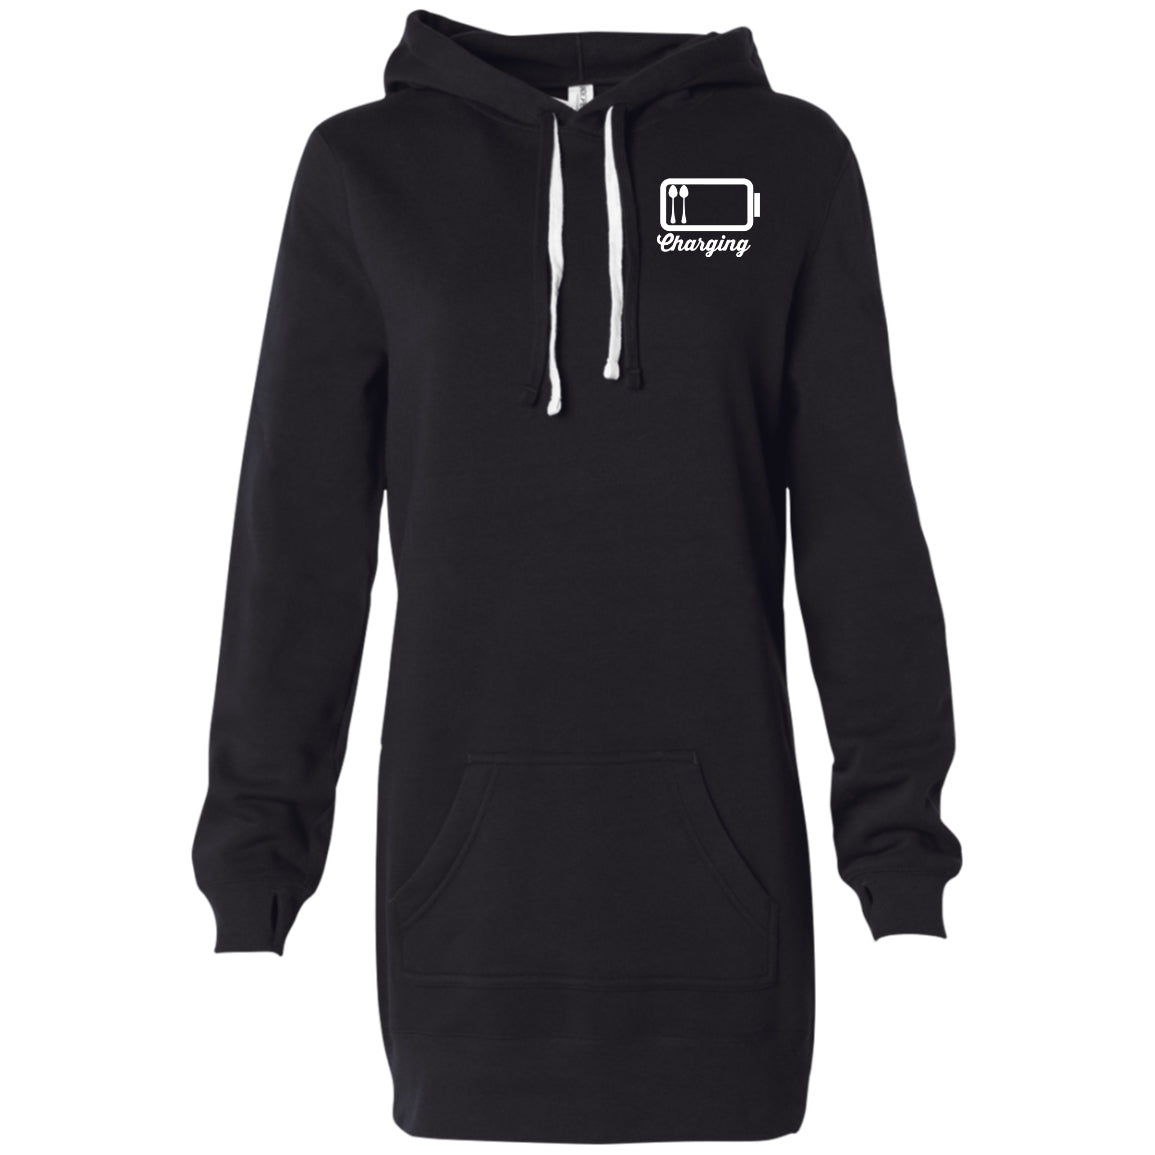 Charging White Women's Hooded Pullover Dress - The Unchargeables